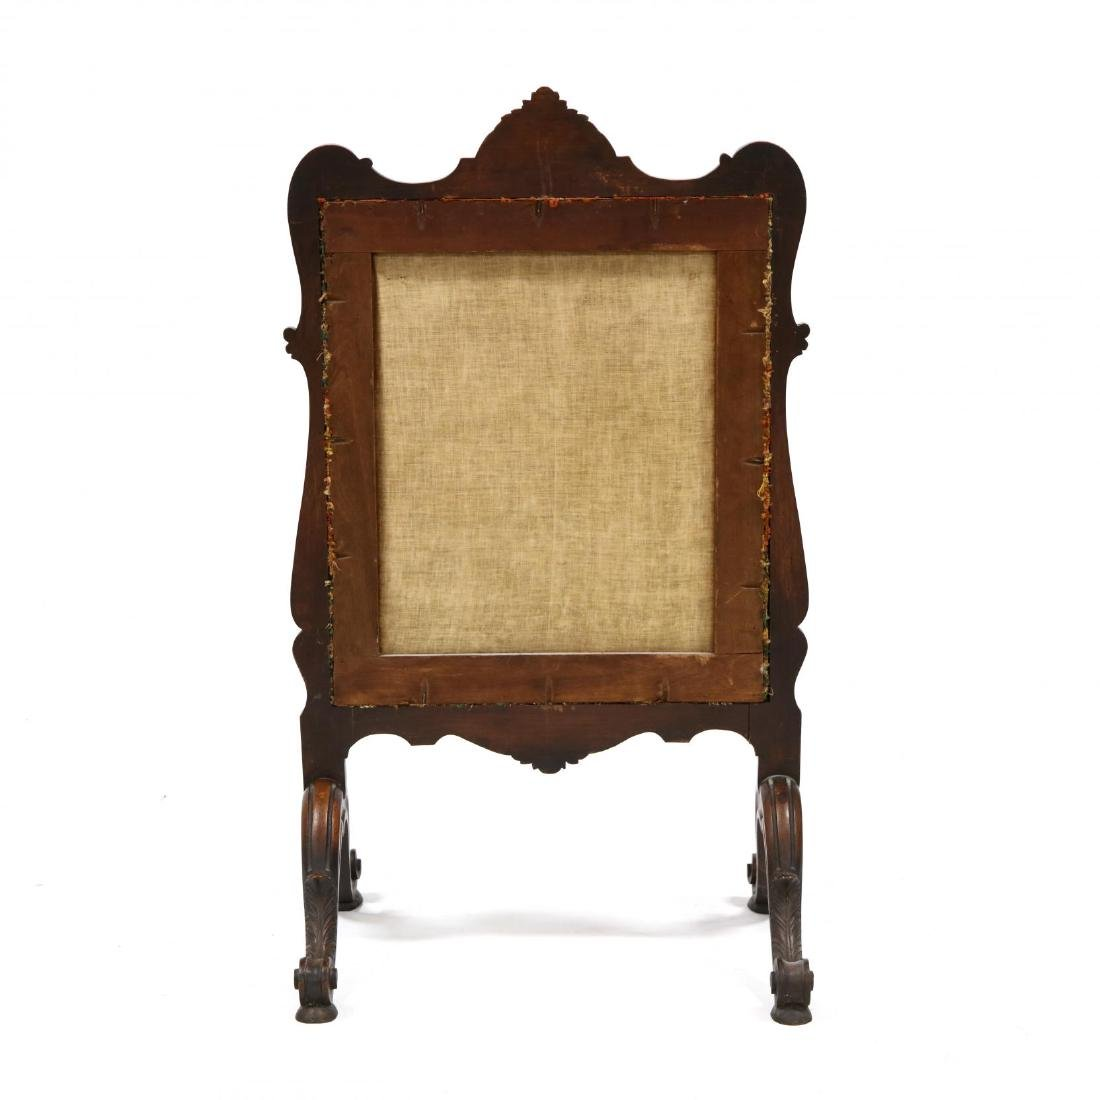 Rococo Revival Carved Walnut Fire Screen - 4